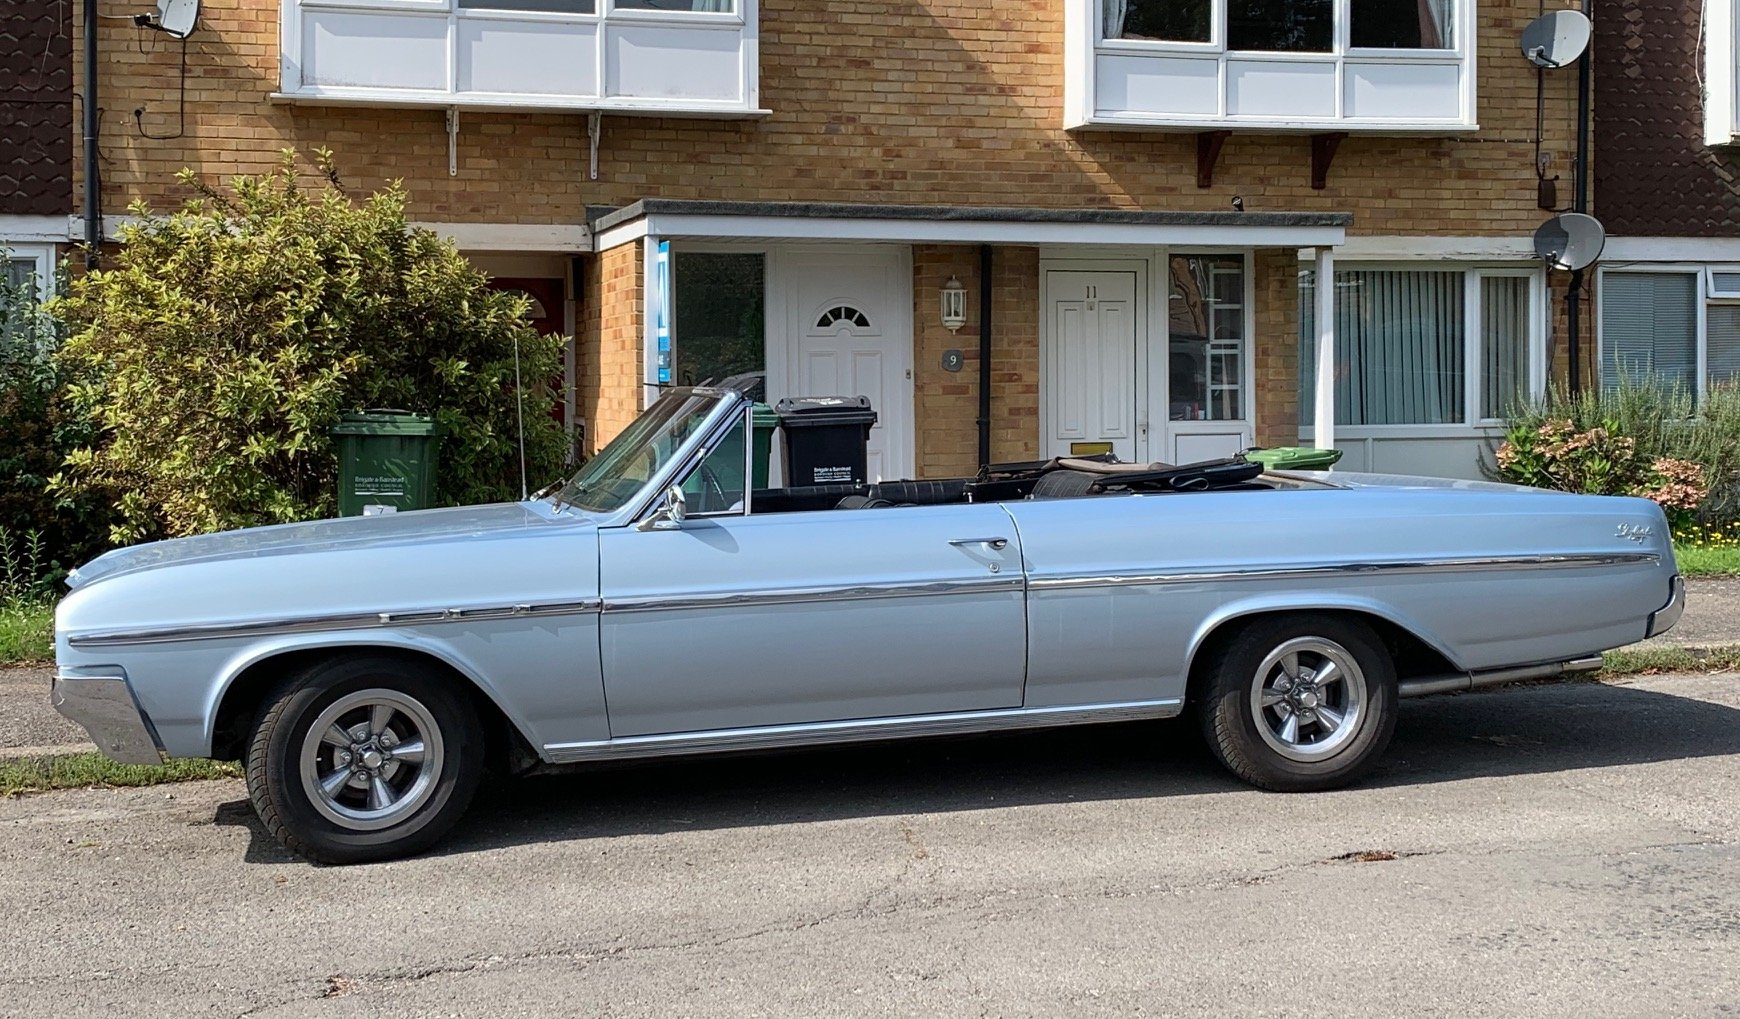 1964 Restored Buick Skylark Convertible For Sale (picture 2 of 6)